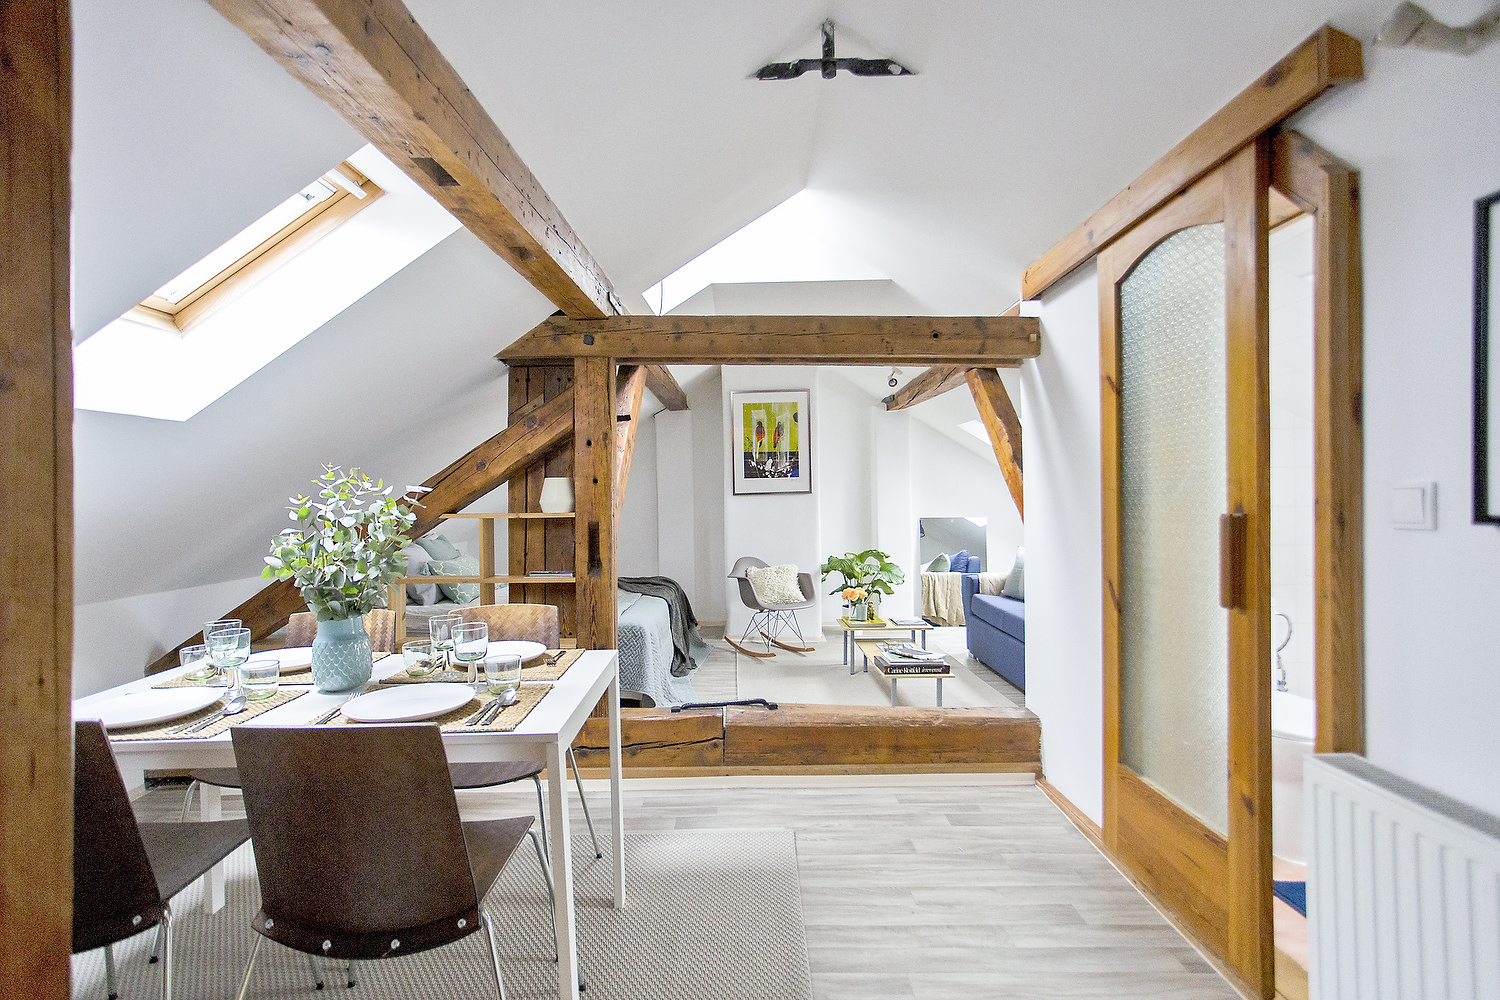 Cozy Attic Bachelor Pad with Original Wood Beams | iDesignArch ...